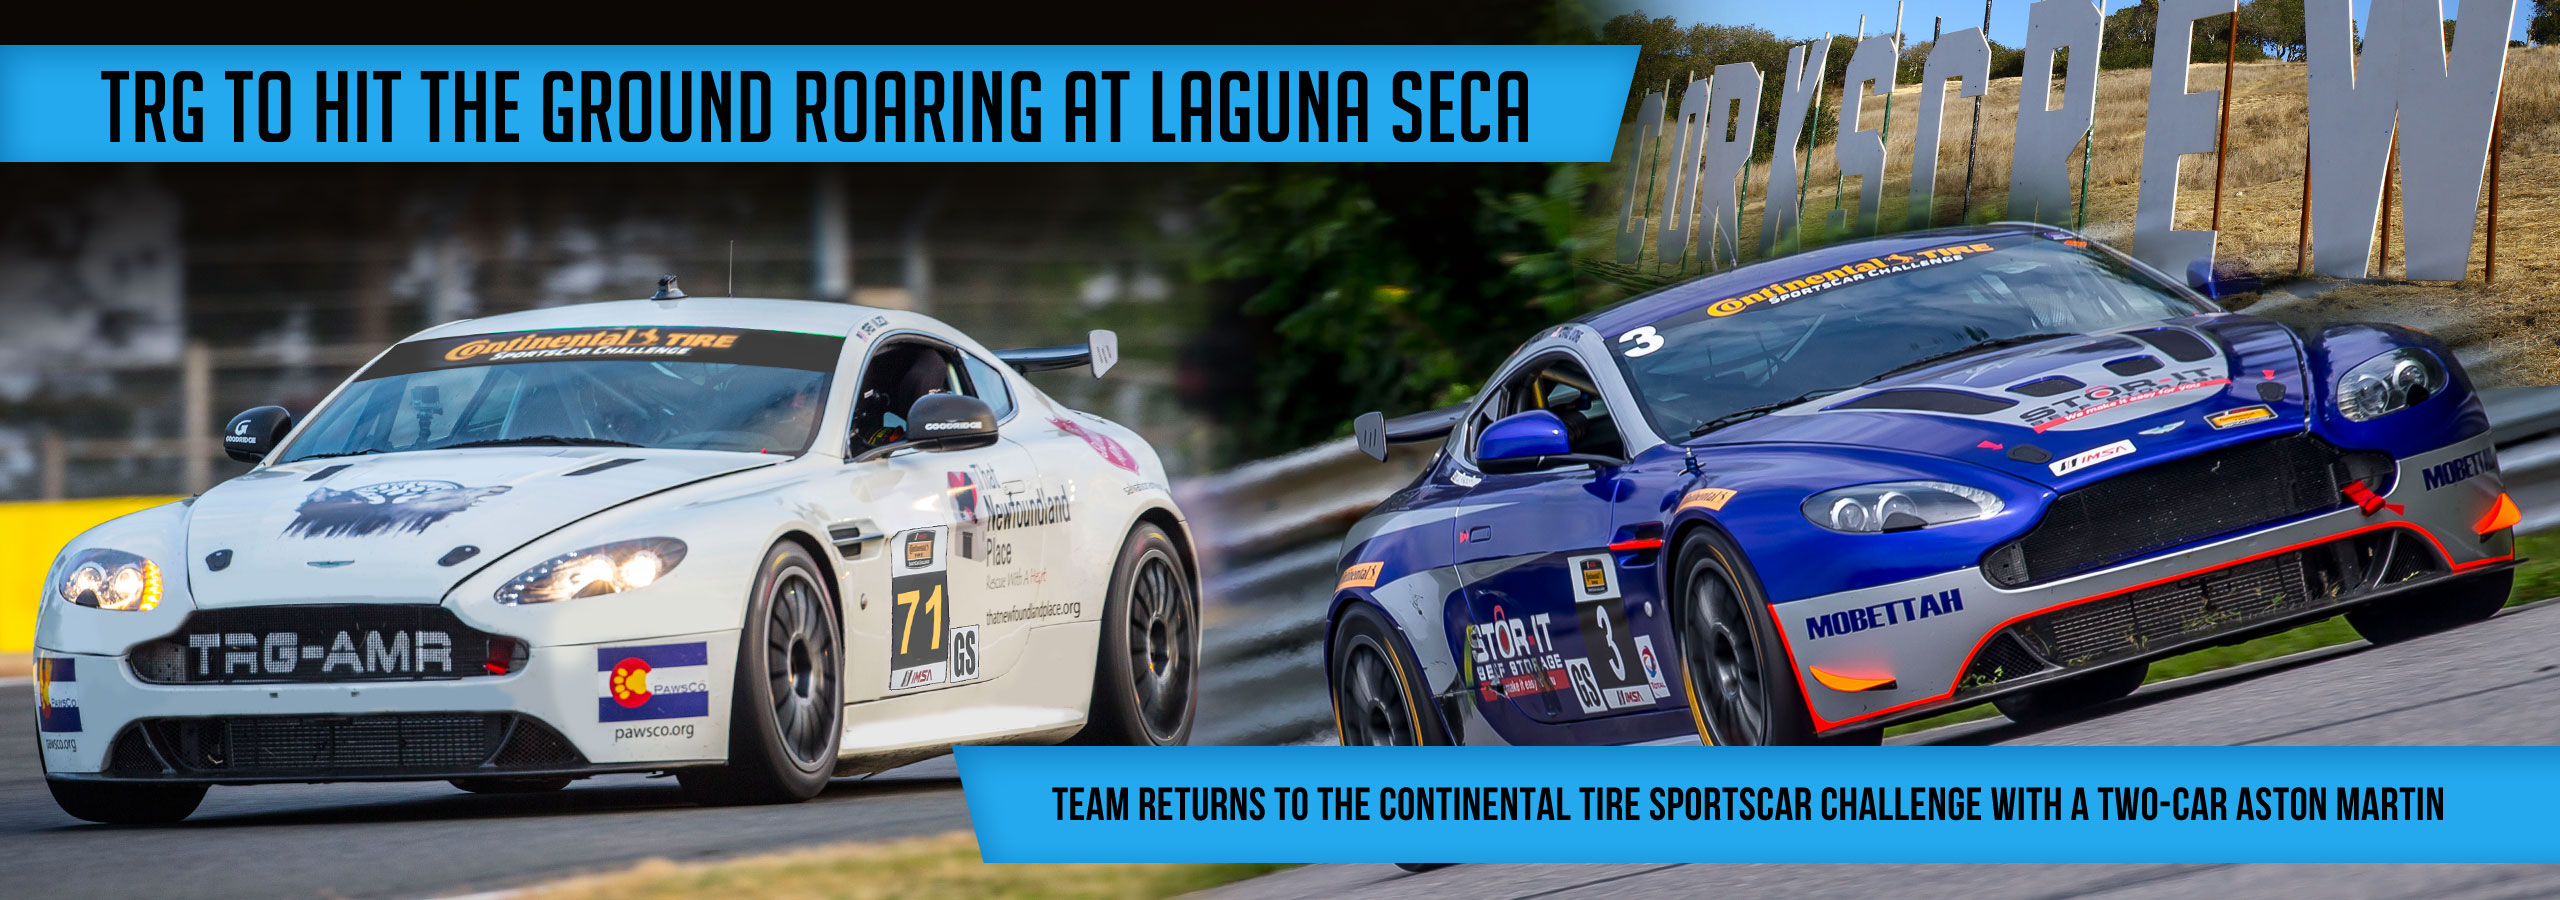 TRG to Hit the Ground Roaring at Laguna Seca Team Returns to the Continental Tire Sportscar Challenge with a Two-Car Aston Martin Line-up